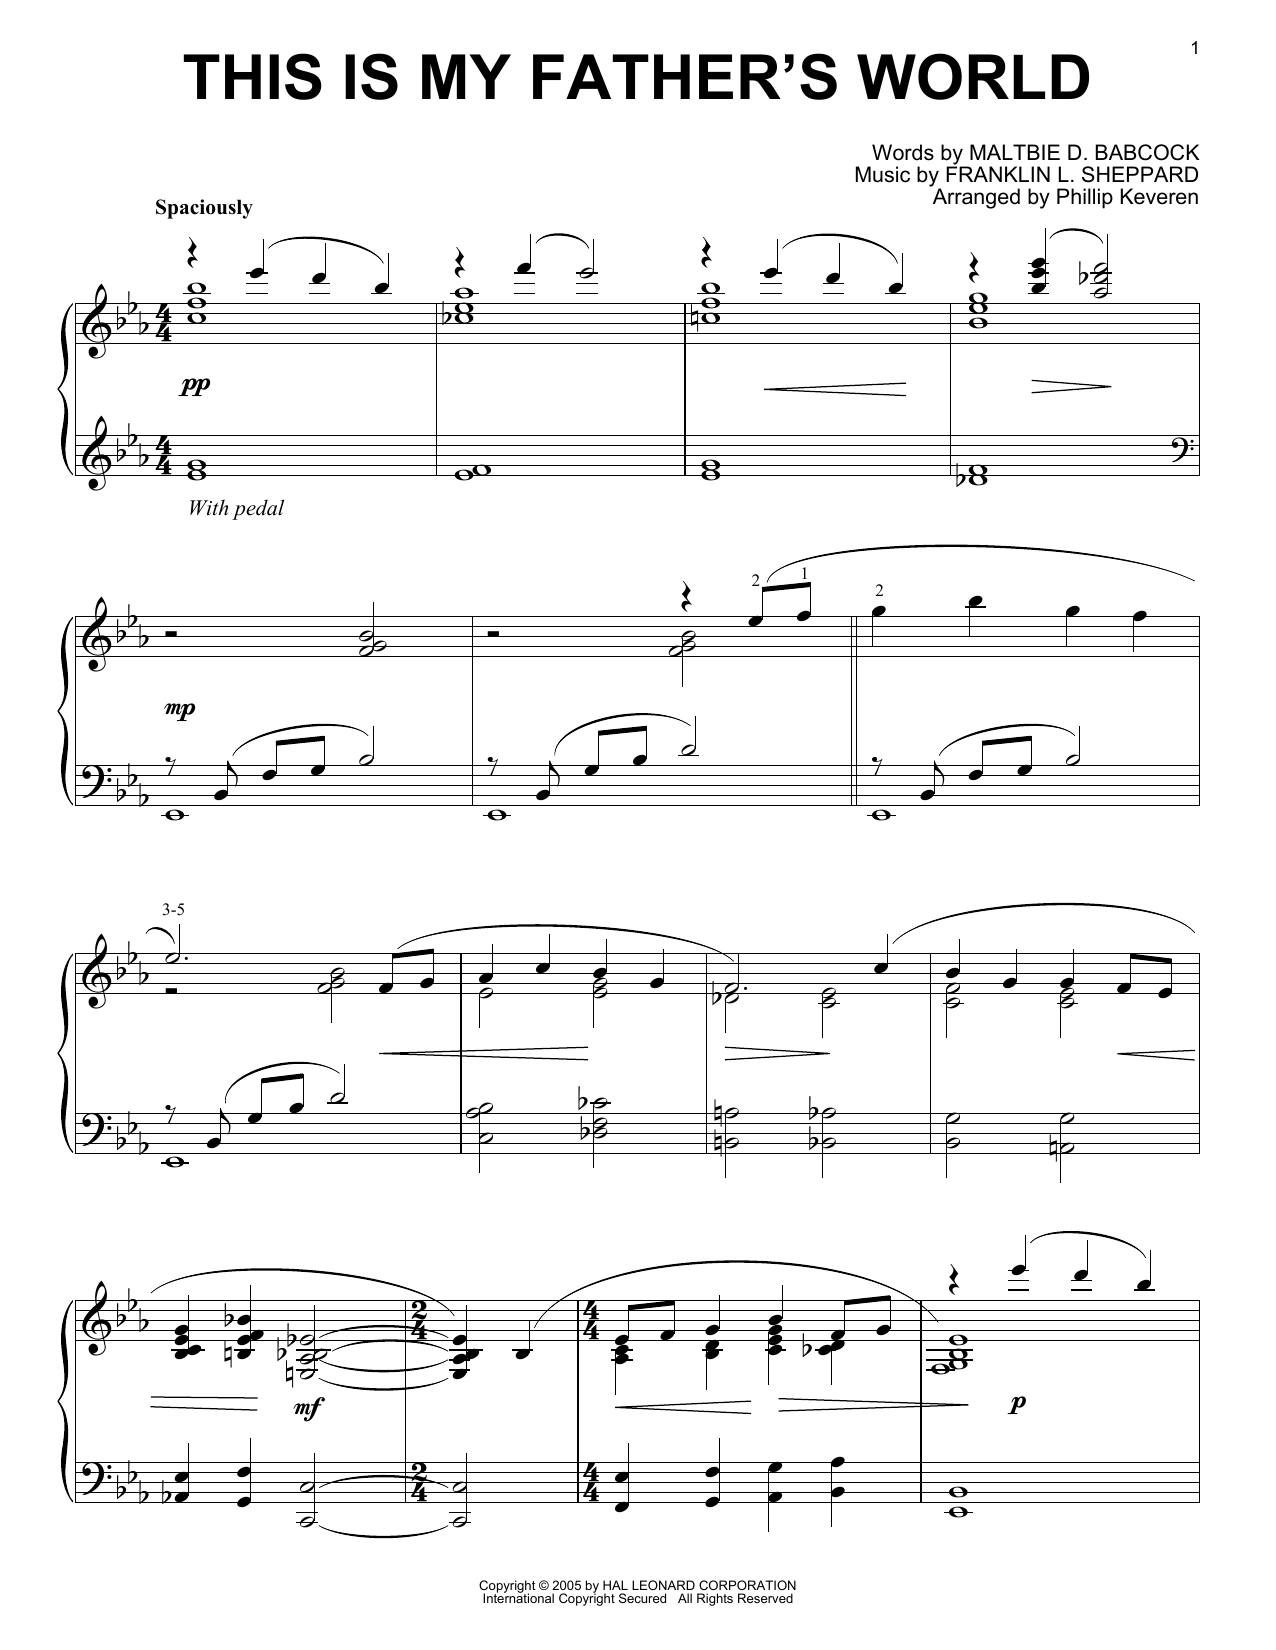 Franklin L. Sheppard This Is My Father's World [Jazz version] (arr. Phillip Keveren) sheet music notes printable PDF score